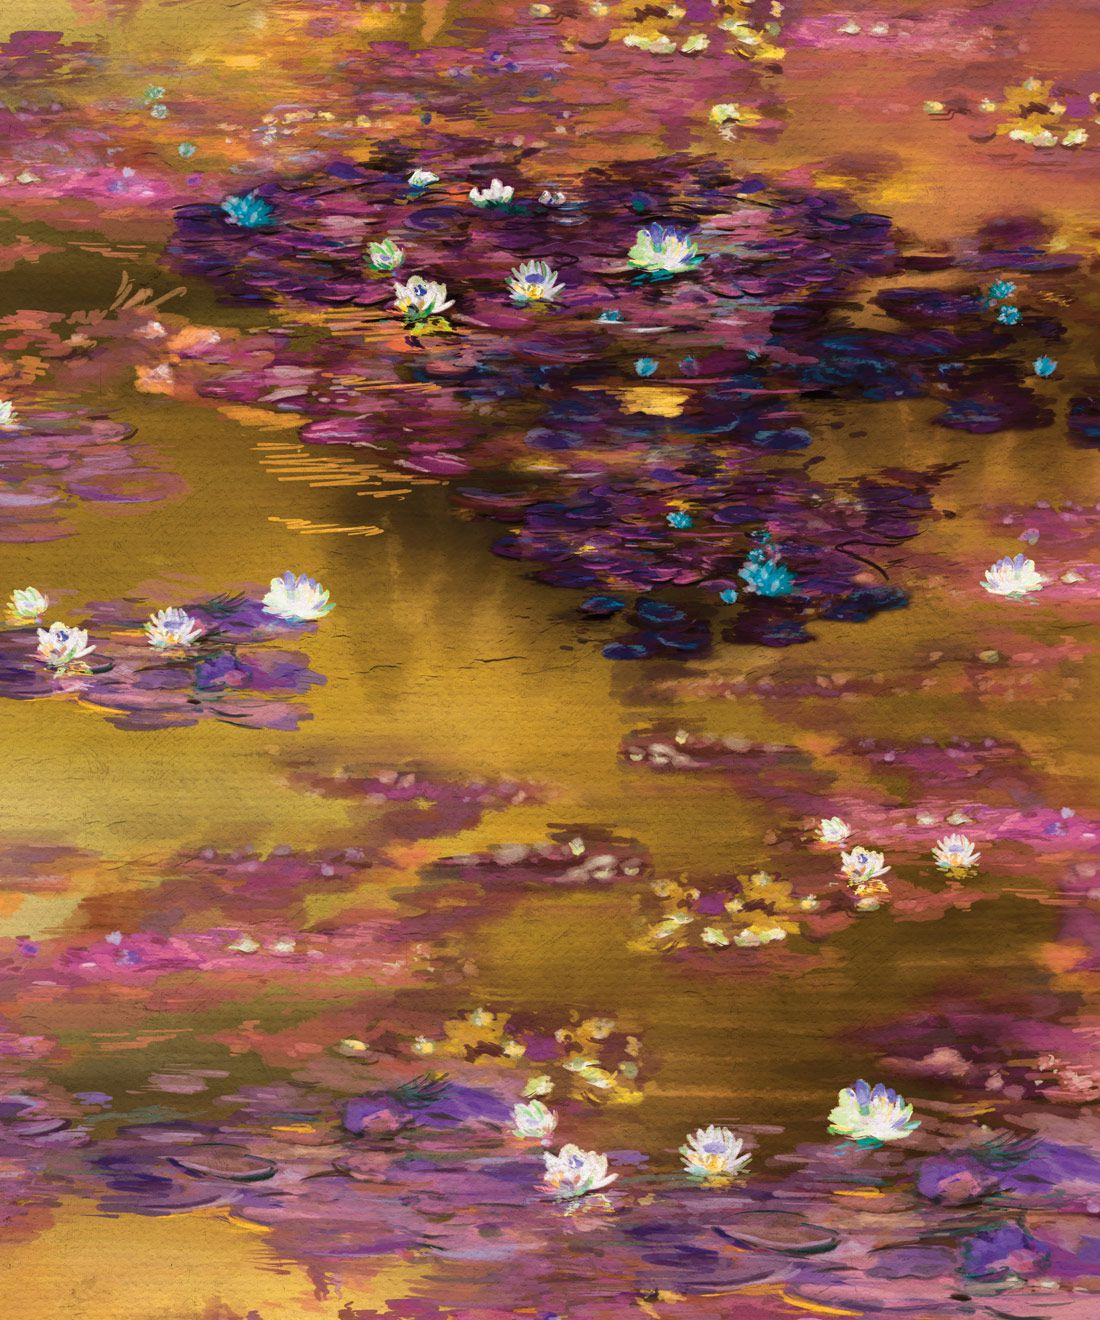 Water Lillies Wallpaper • Abstract Wallpaper • Dreamy Wallpaper • Luminere Wallpaper • Swatch